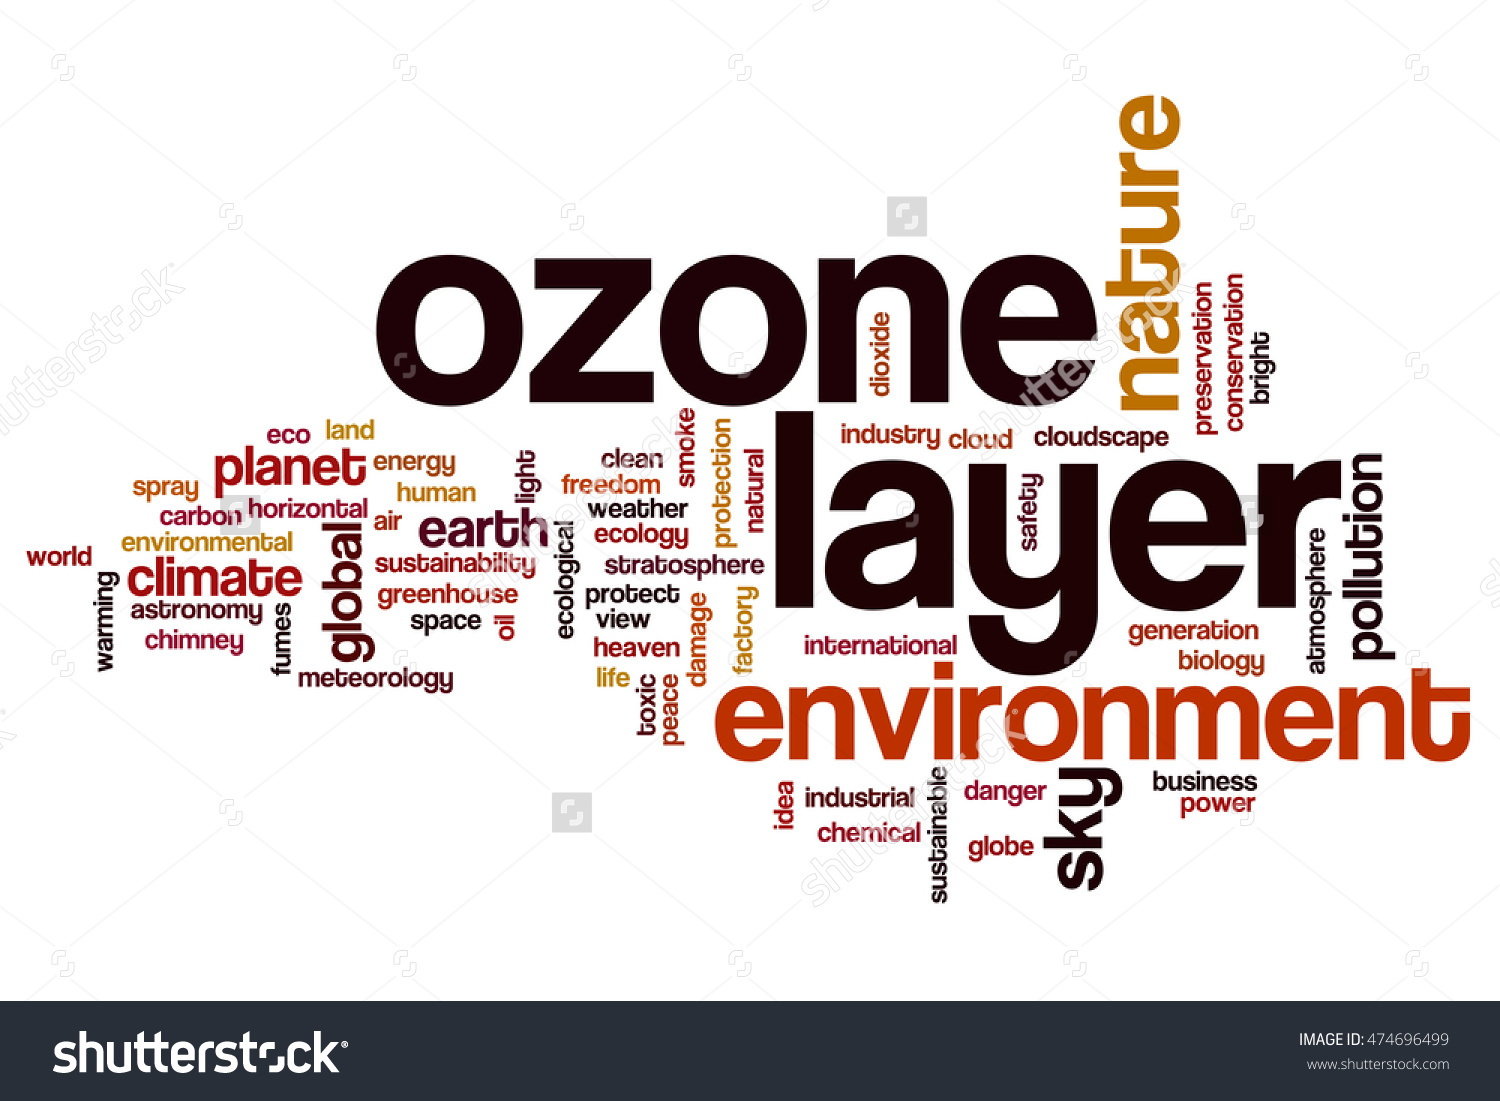 Ozone Layer Word Cloud Concept Stock Photo 474696499 : Shutterstock.